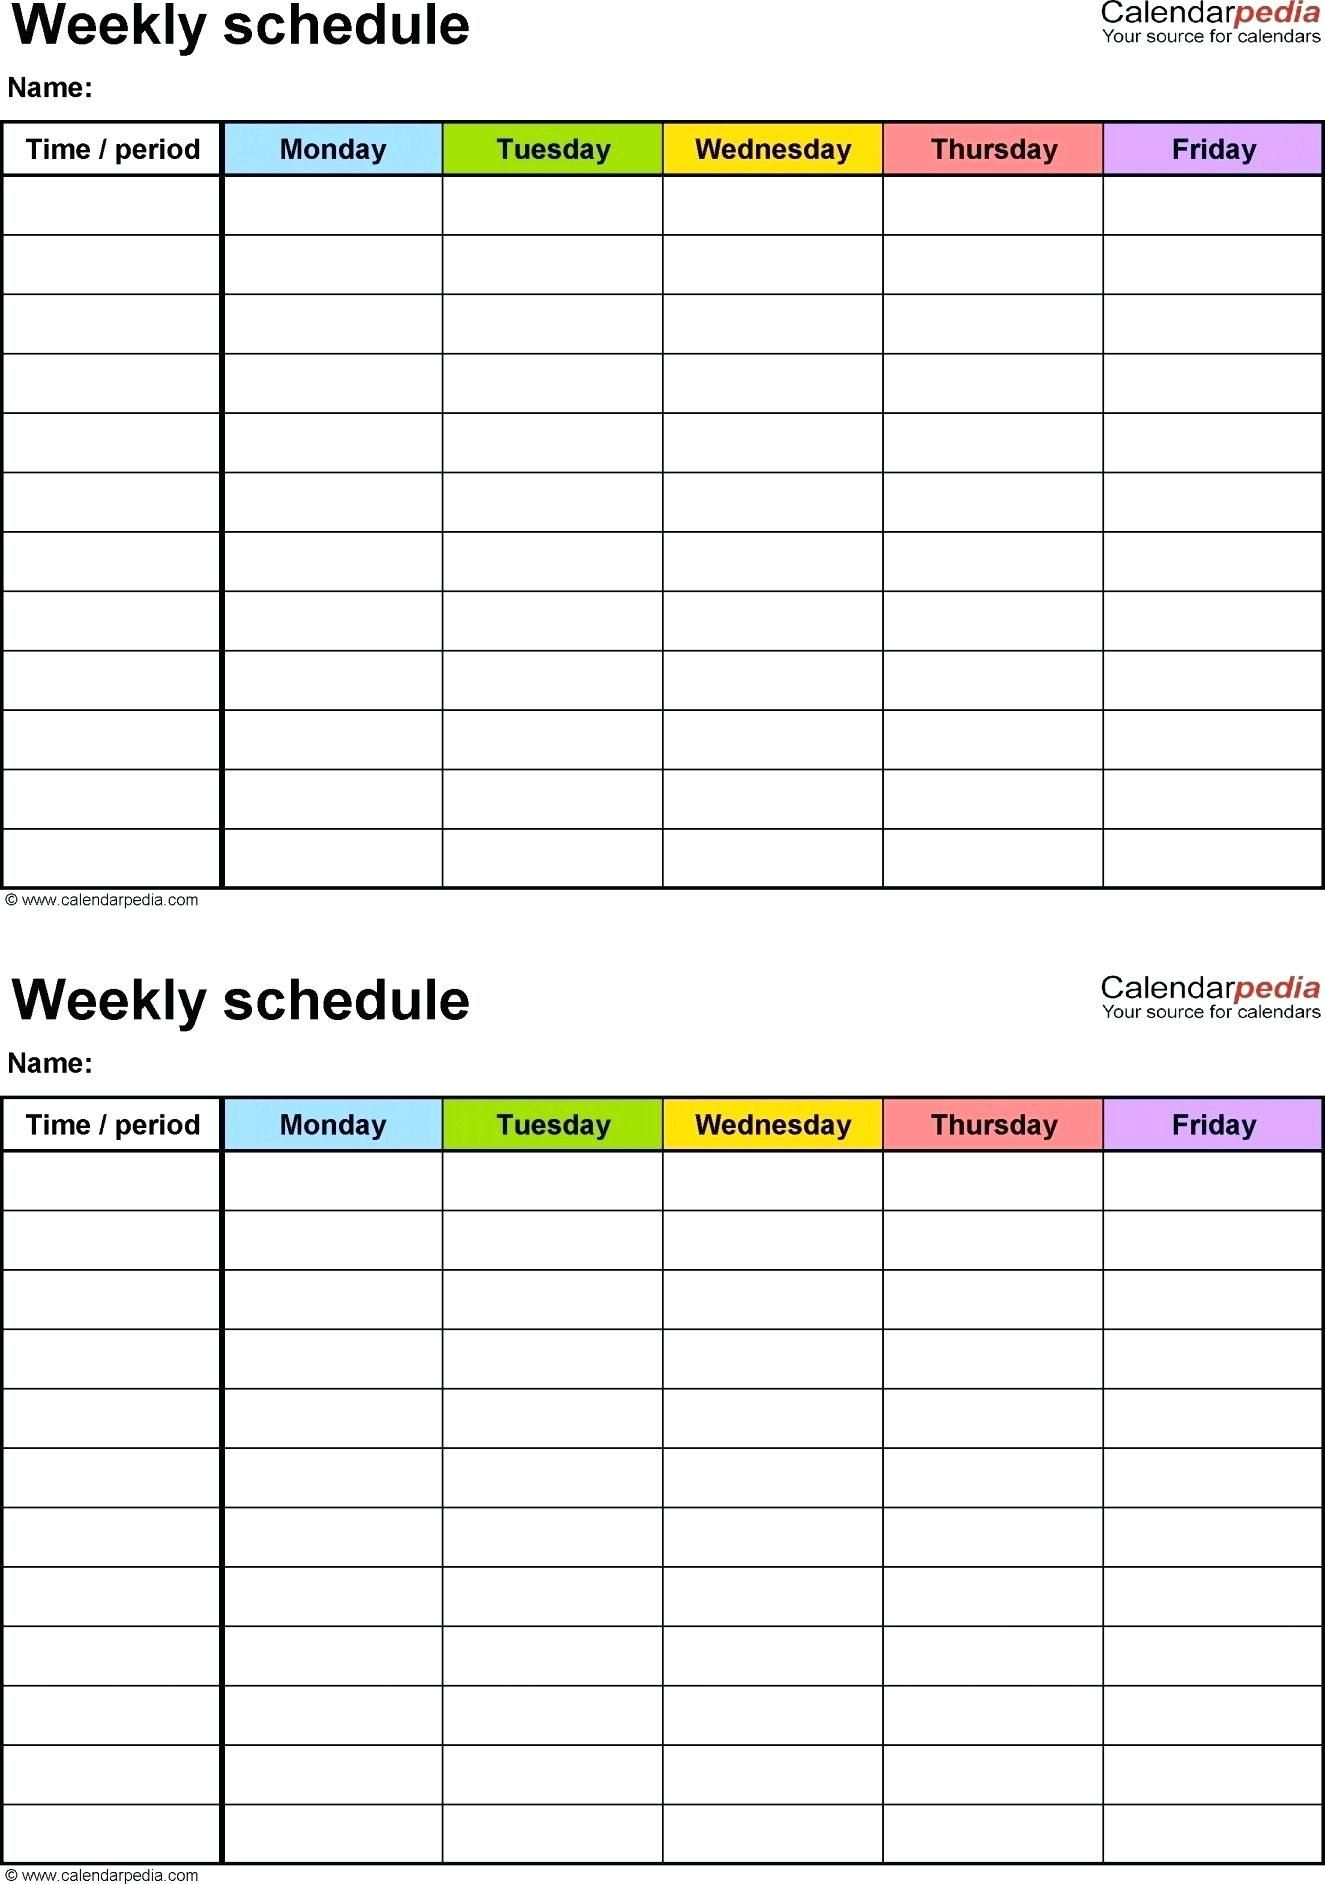 Itinerary Template Ndash Verypageco | Itinerary | Class throughout Time And Action Calendar Template